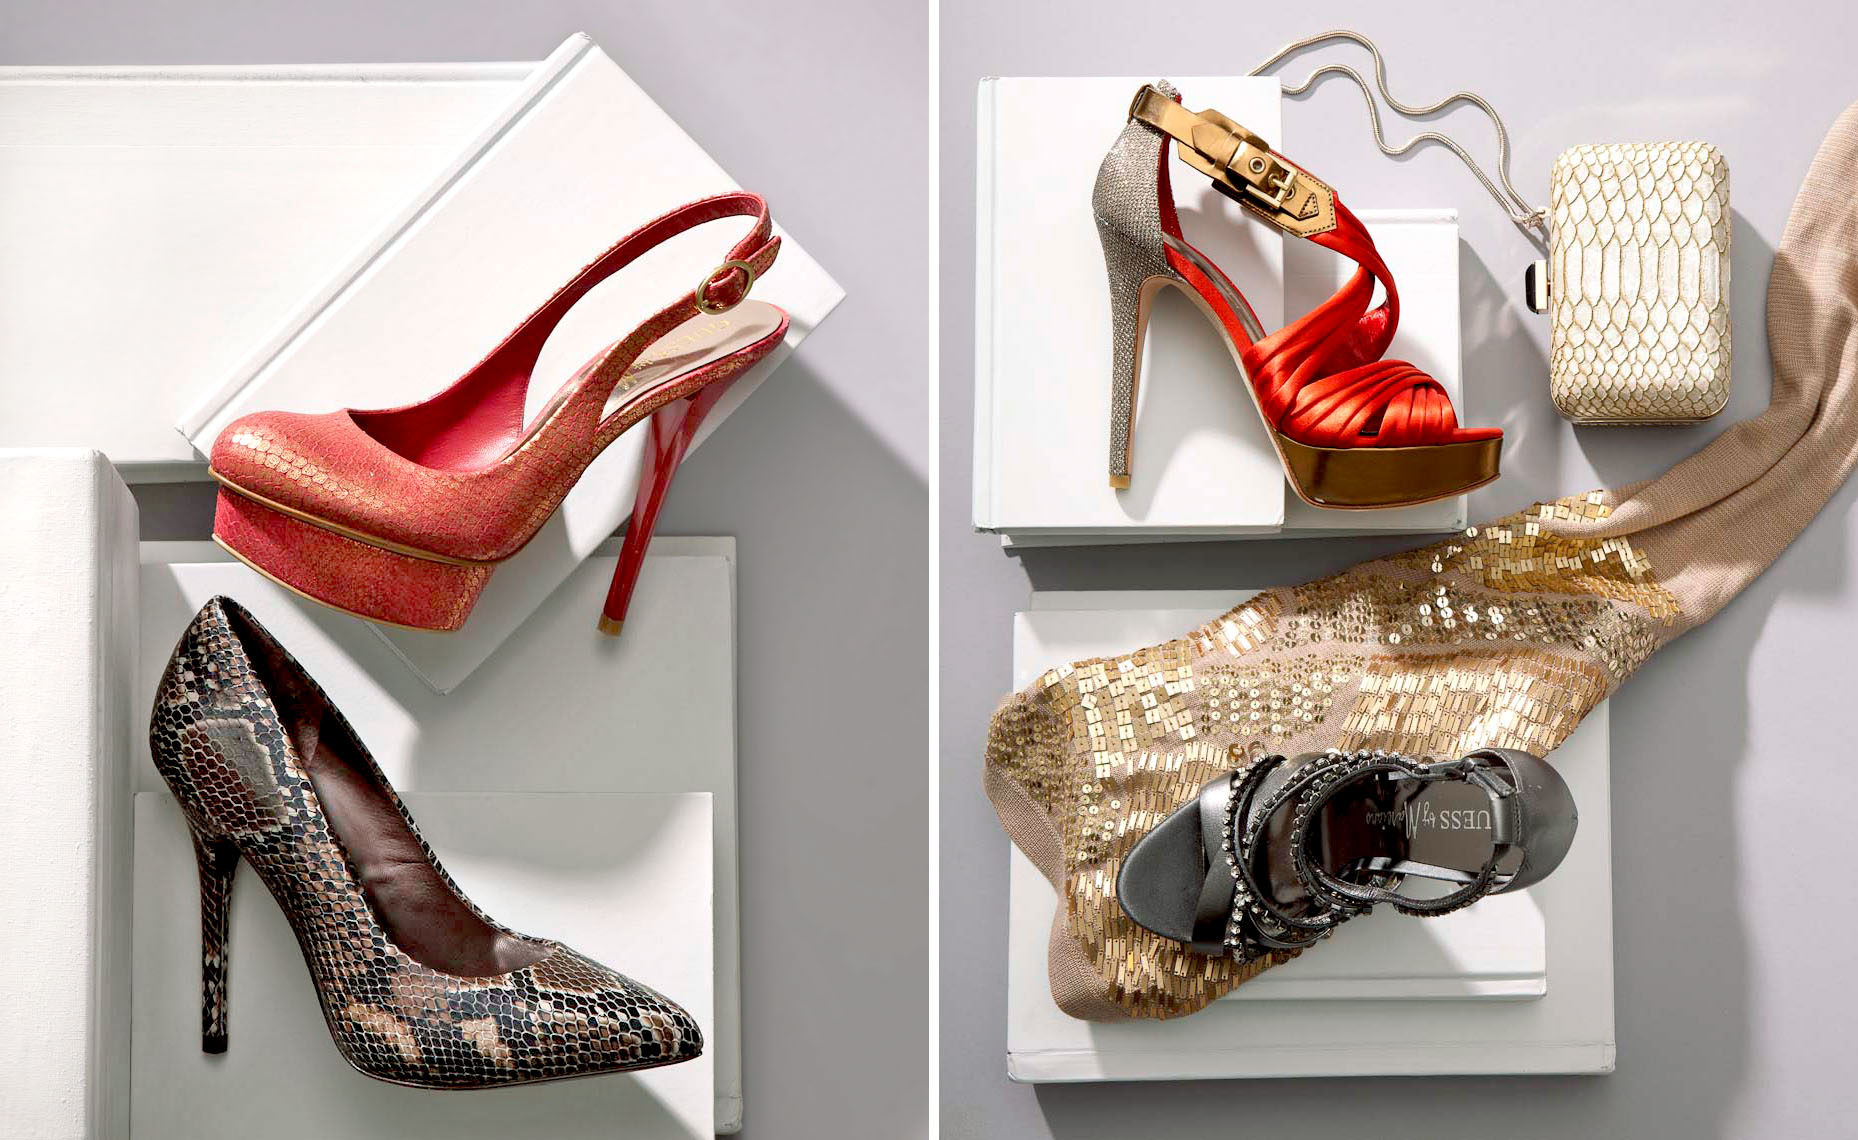 Accessories Still Life, Pumps by Guess